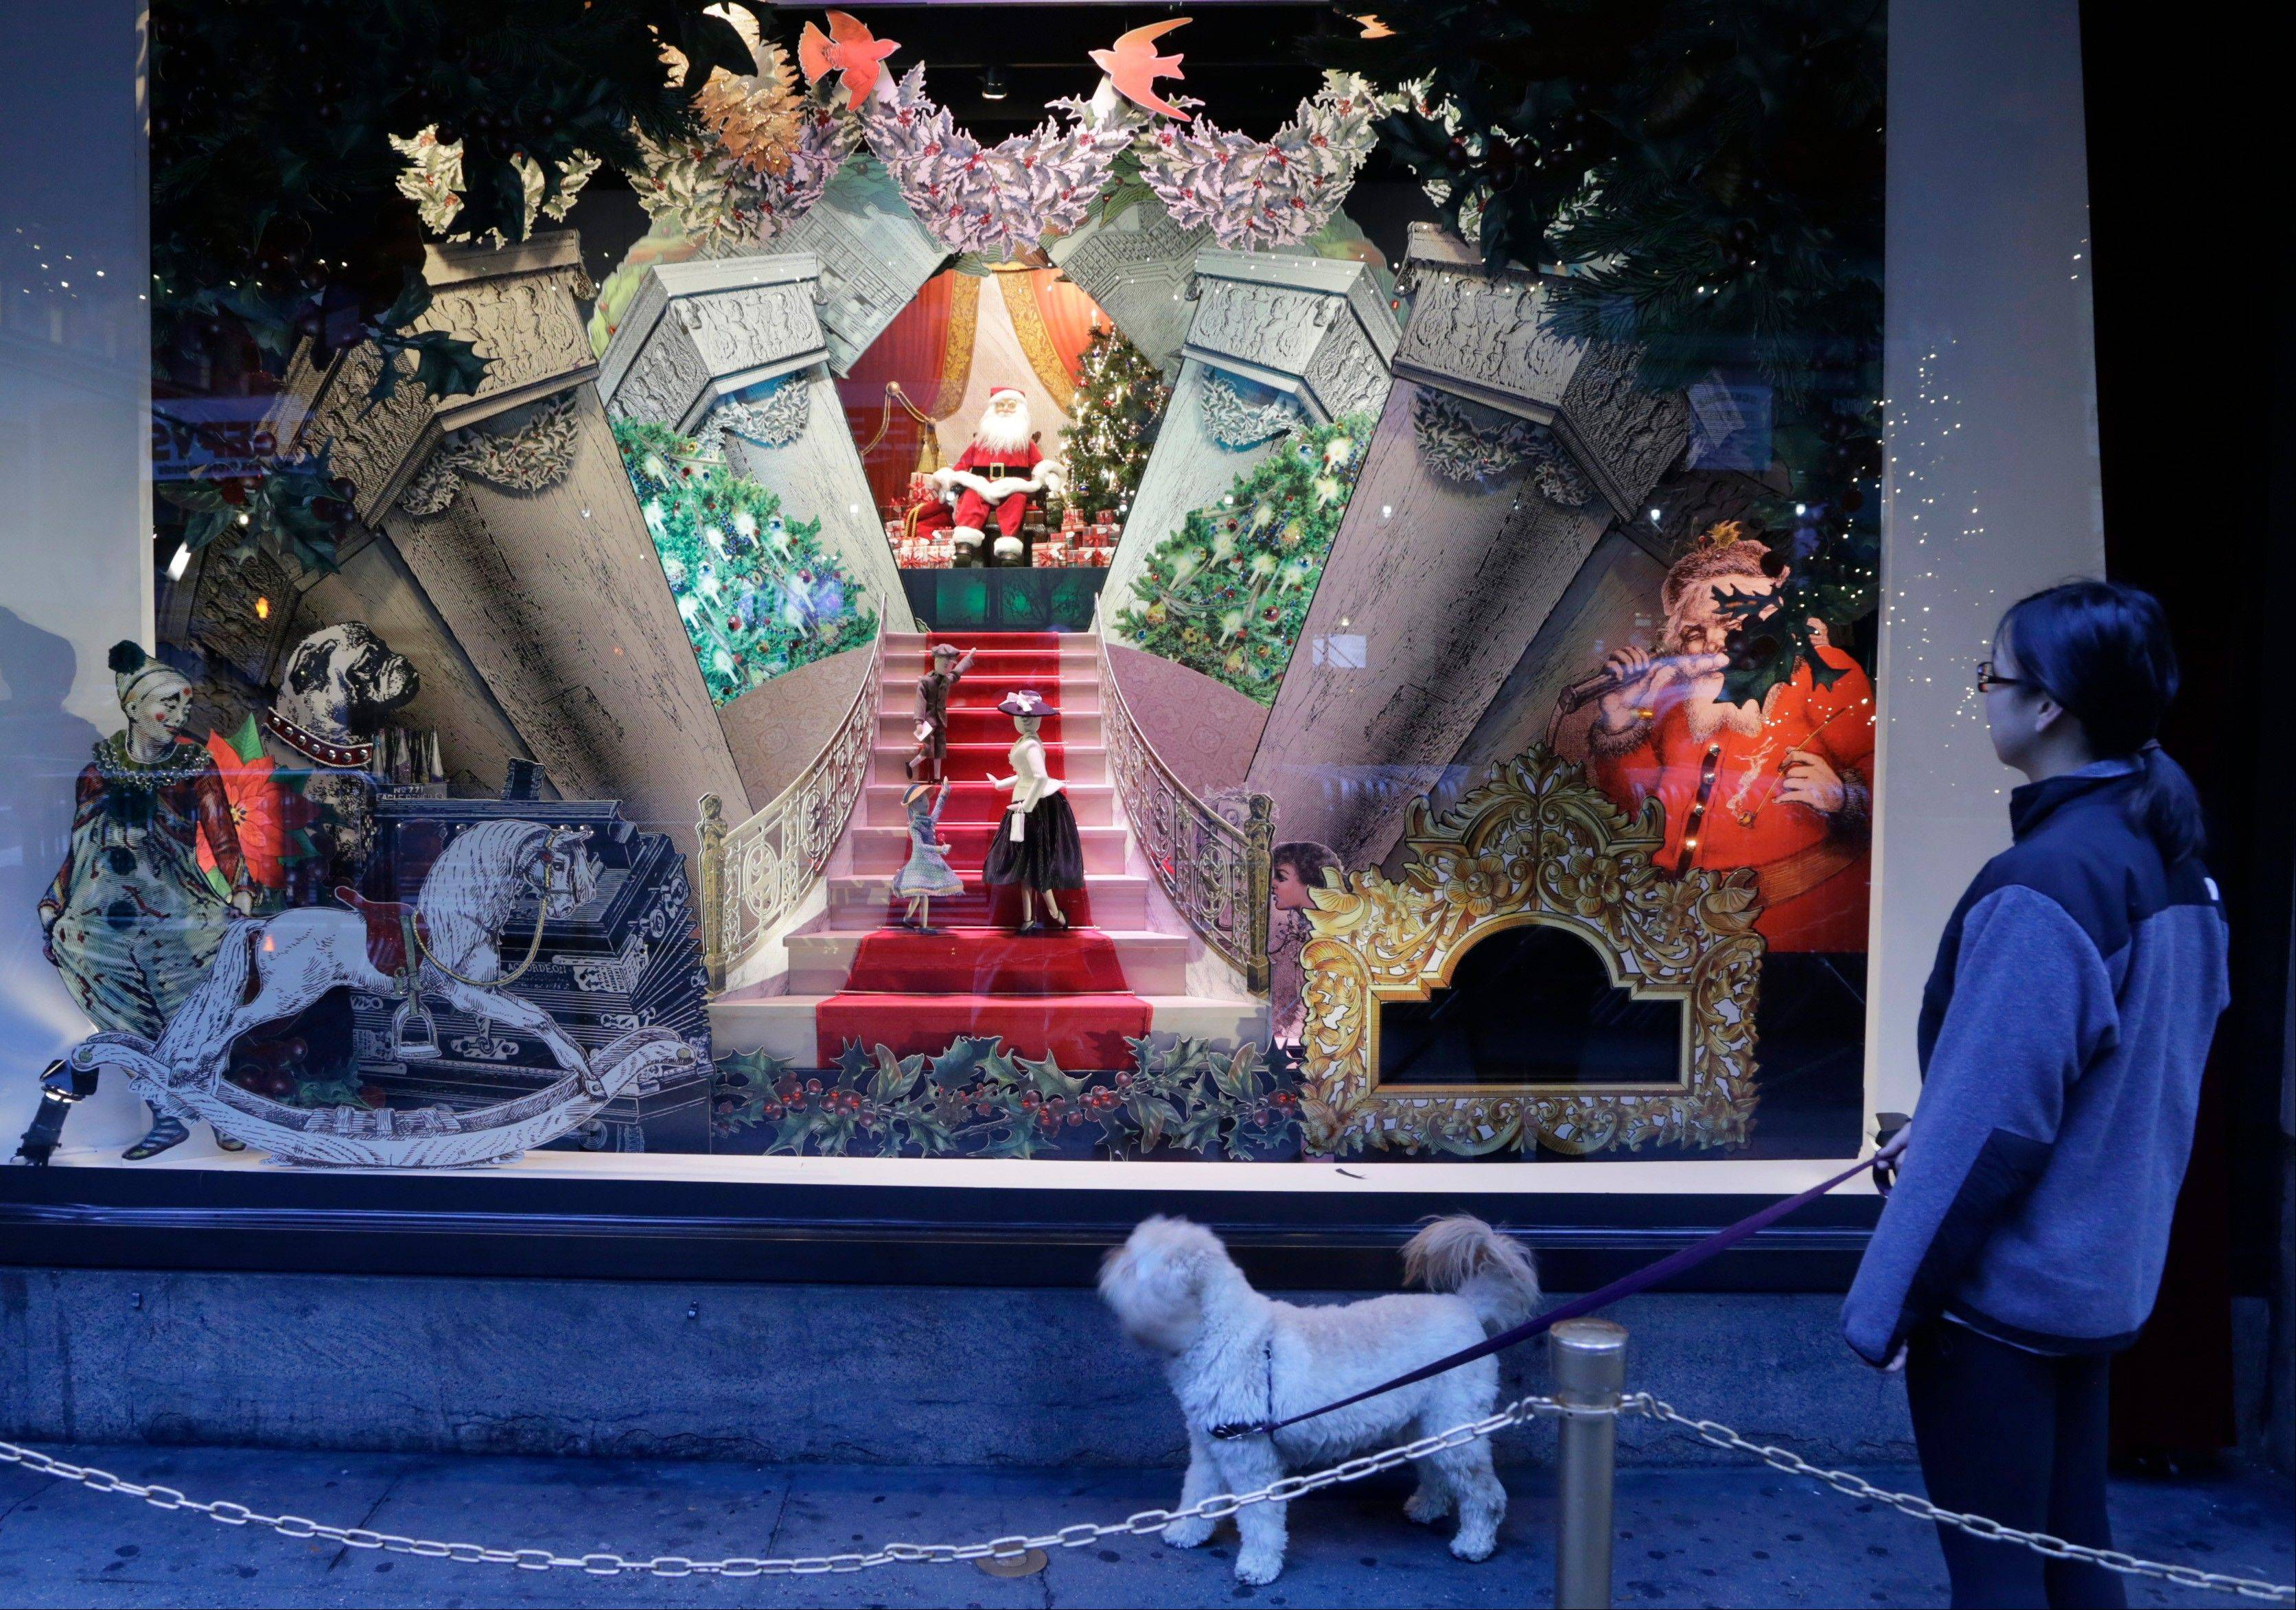 A woman walks her dog past a vintage Santa Claus holiday window display at Lord & Taylor department store in New York. Forget window shopping, some of Manhattan's biggest and most storied retailers say their elaborate seasonal window displays are a gift to passers-by.